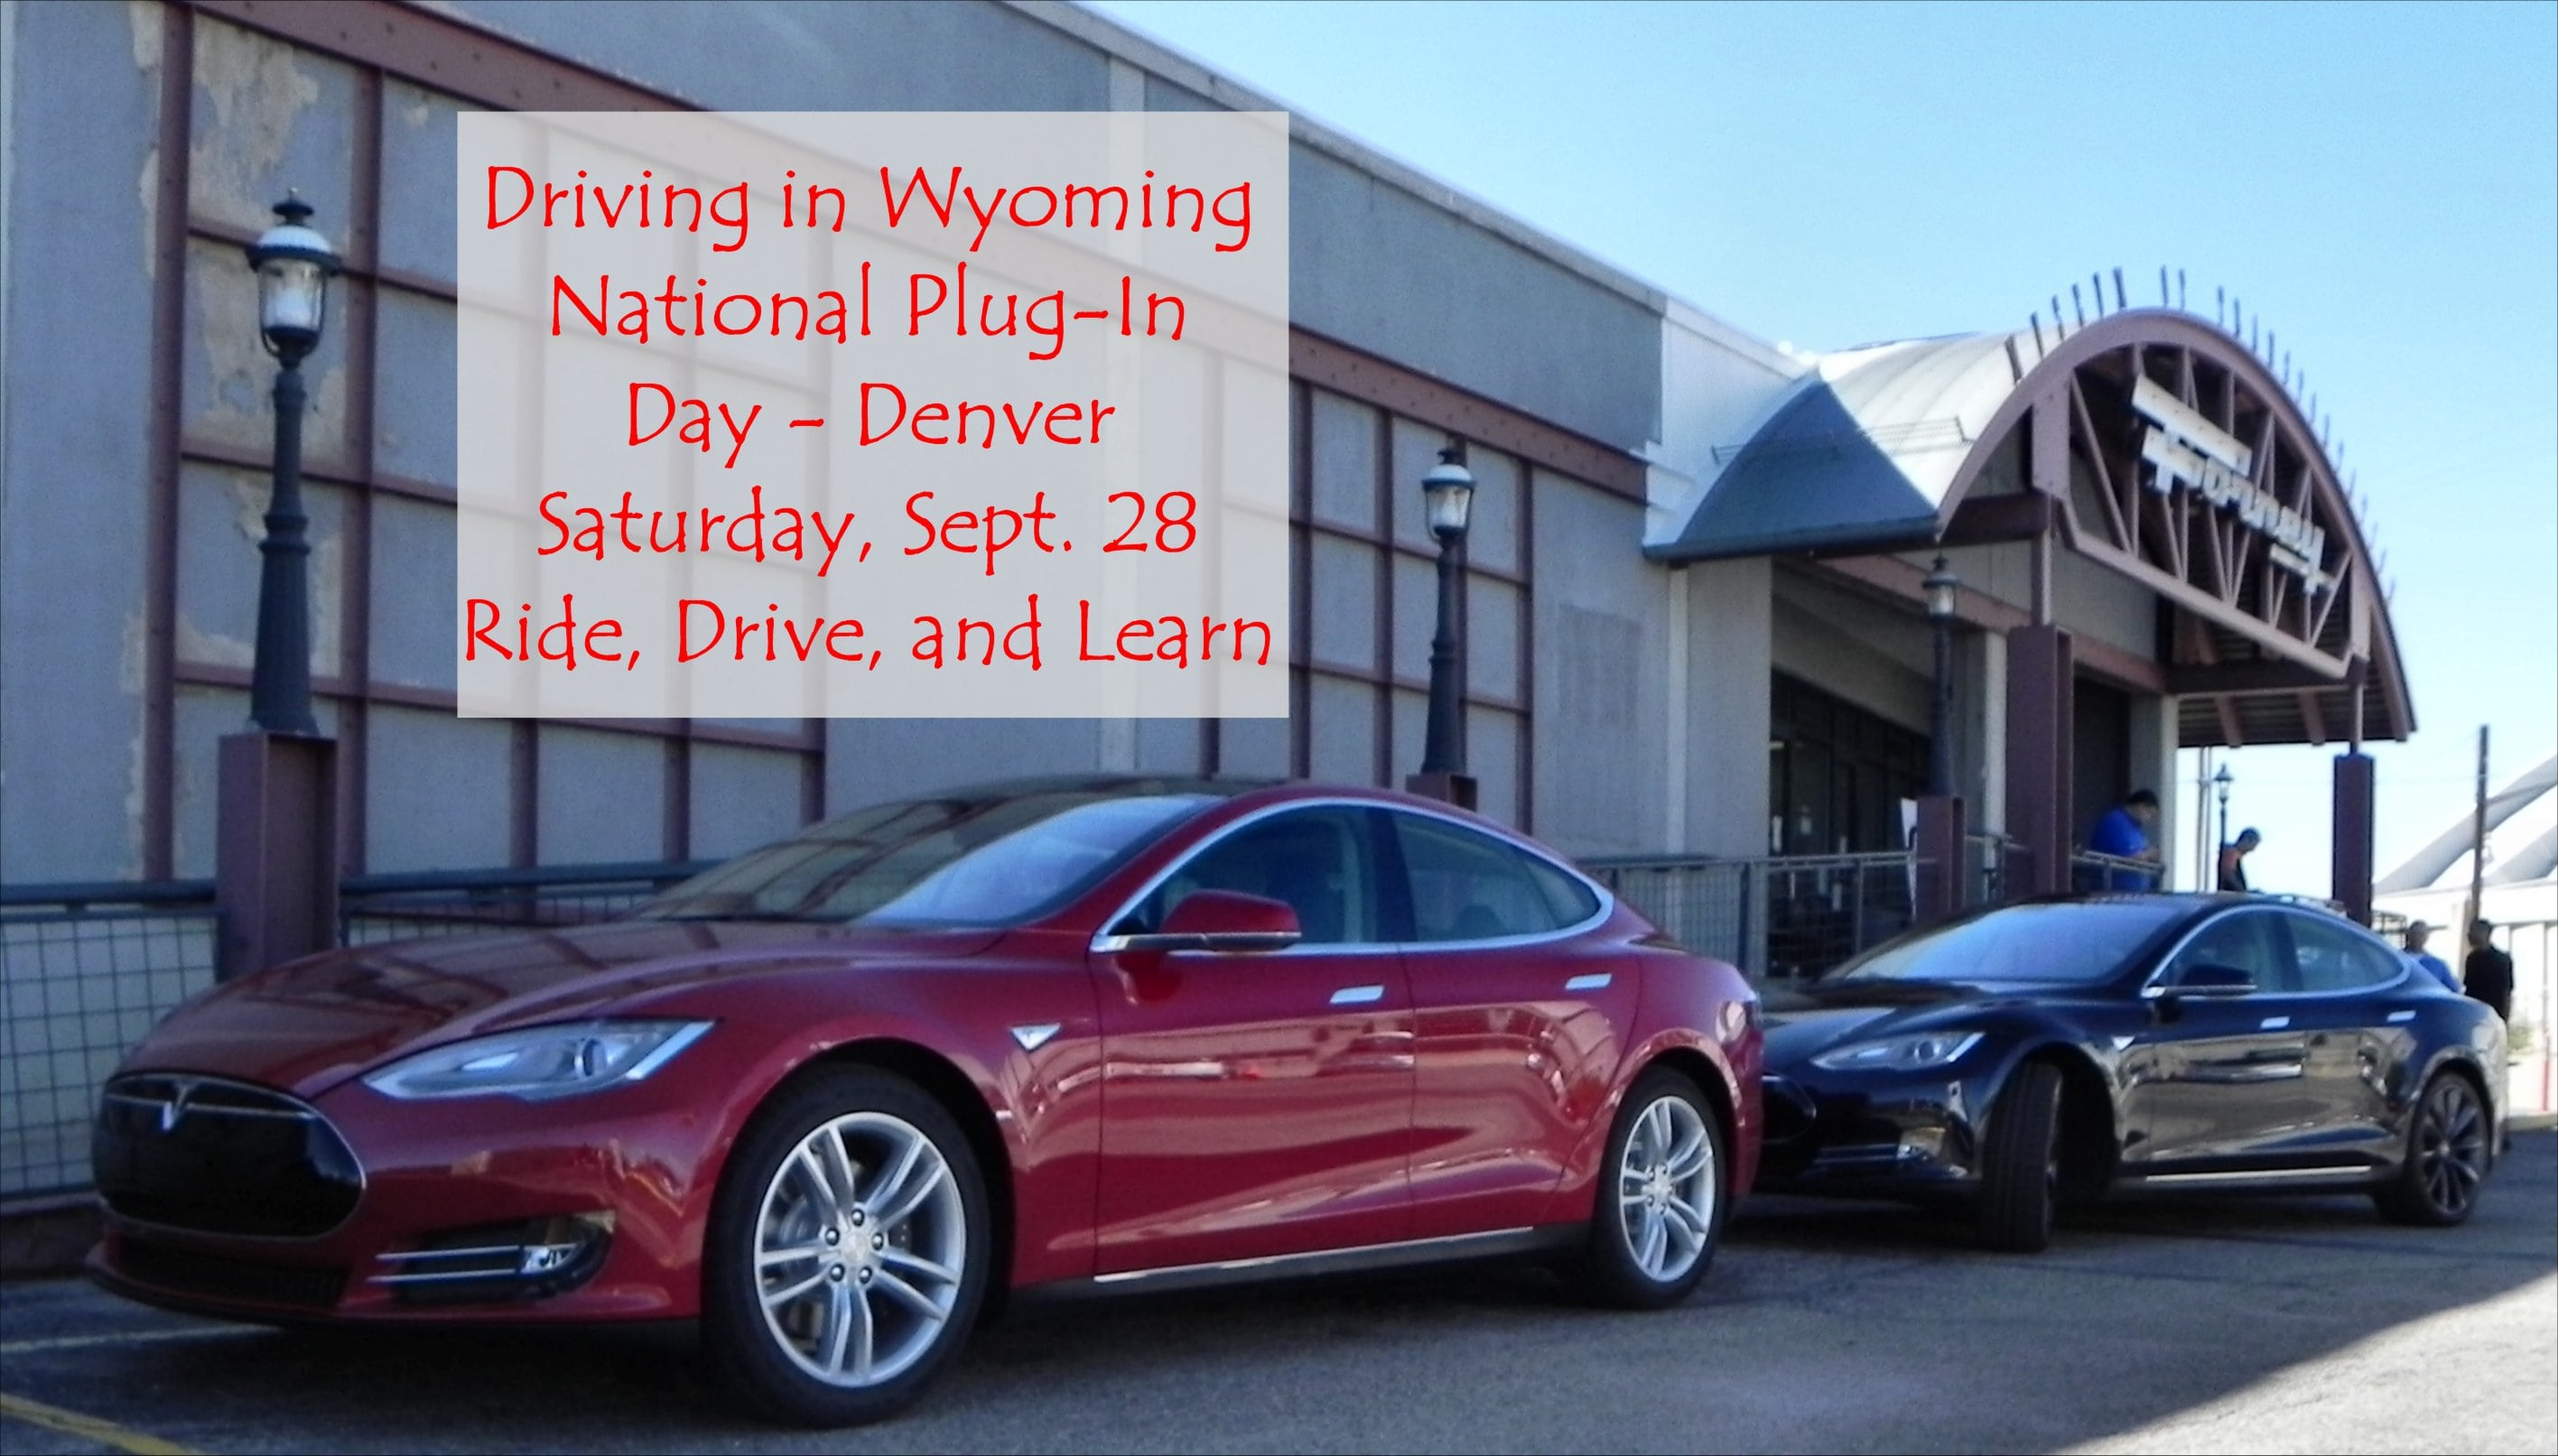 Driving in Wyoming Podcast – Preview of National Plug-In Day, Denver